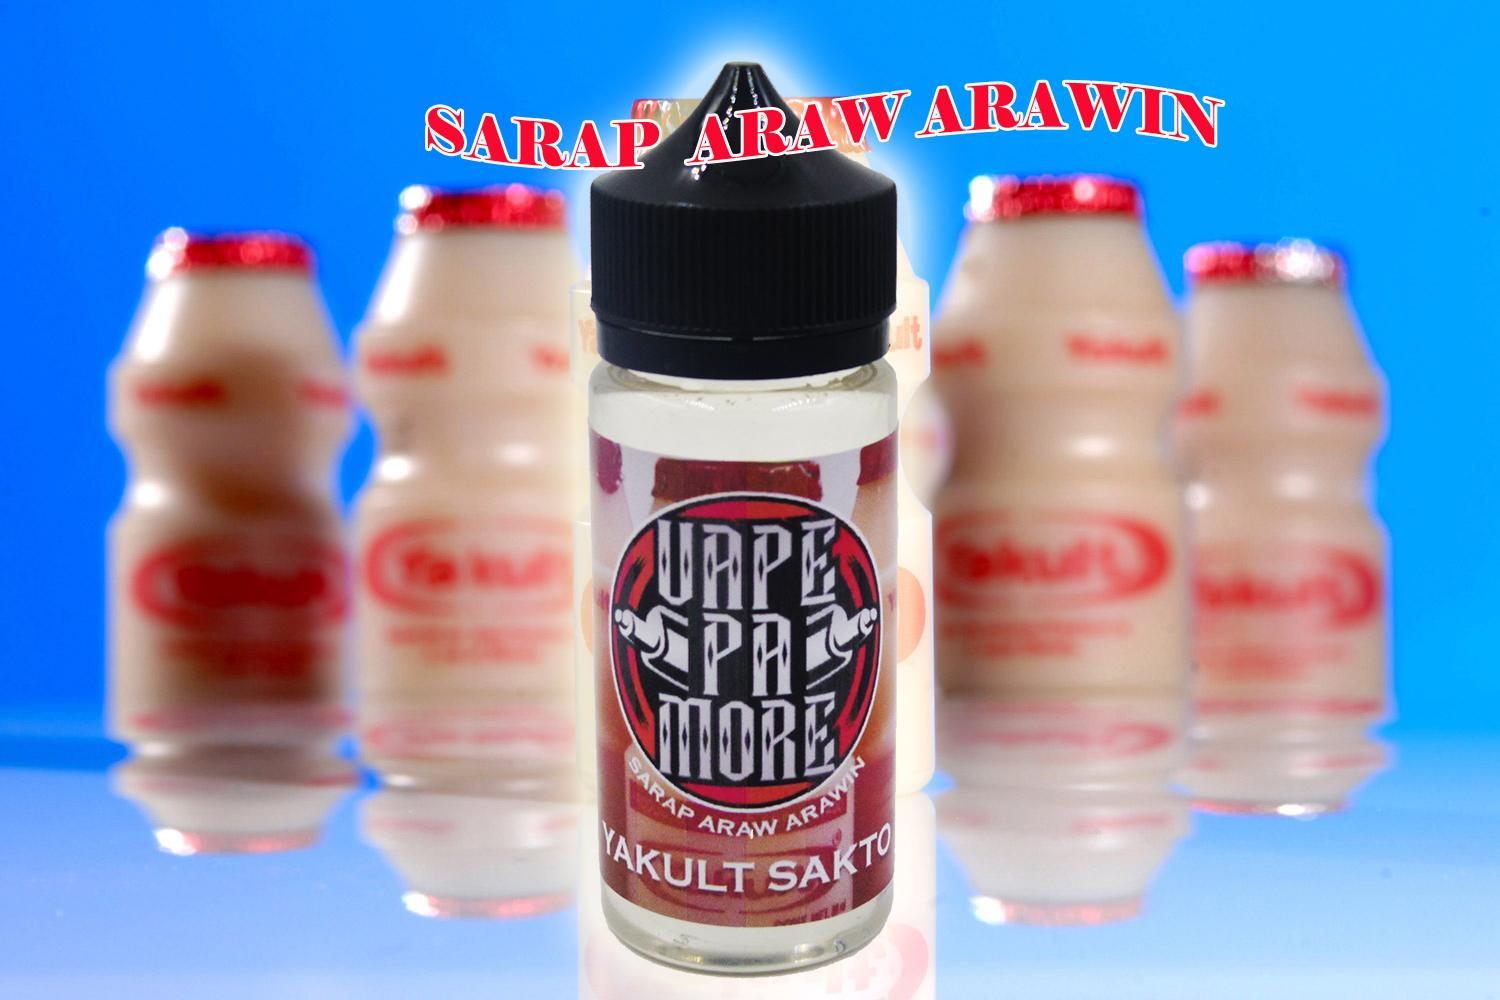 VAPE PA MORE 100ML YACULT SAKTO 4MG